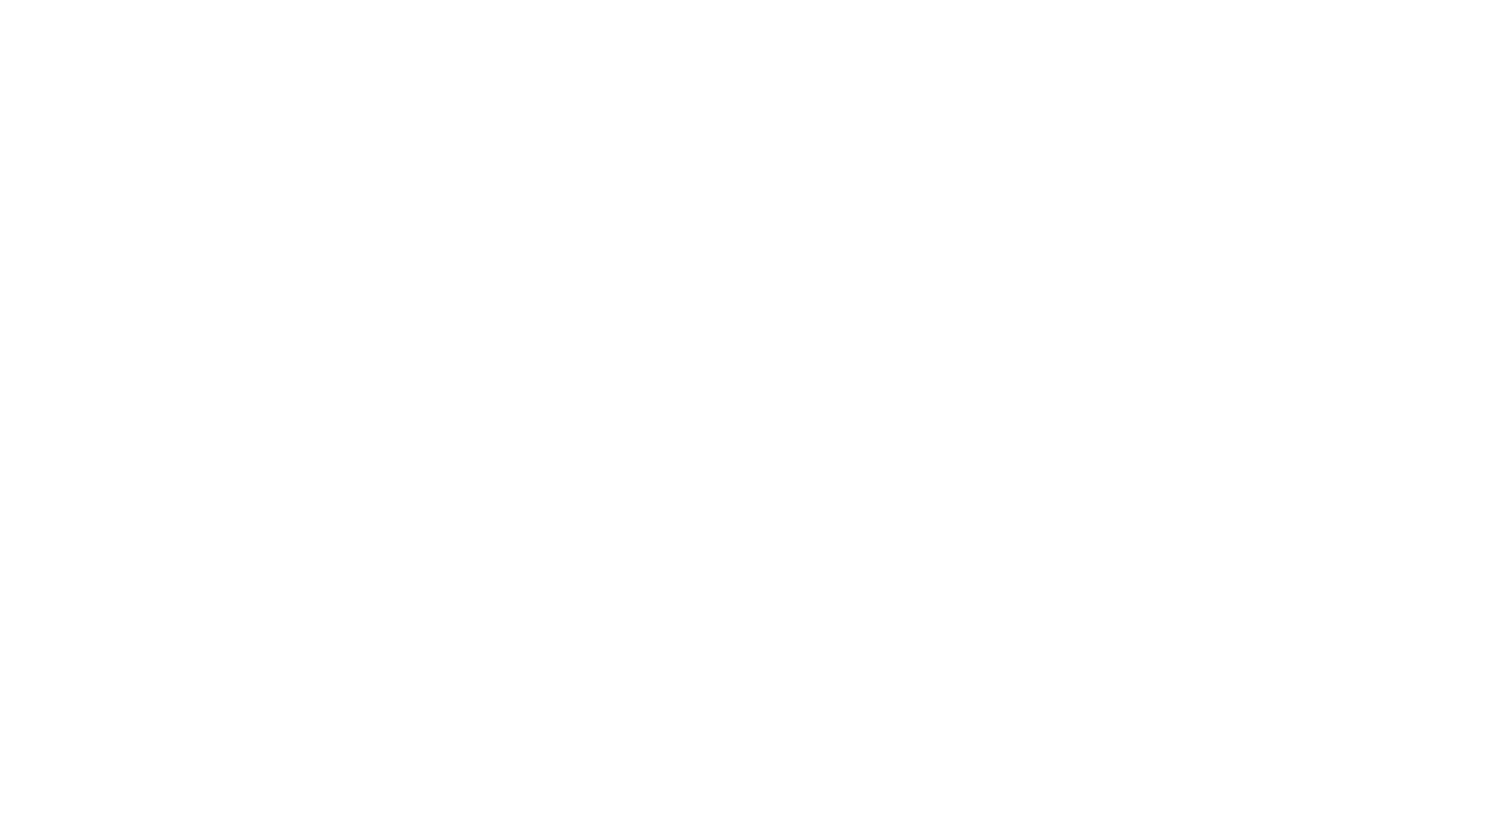 MAINSTEM MALT